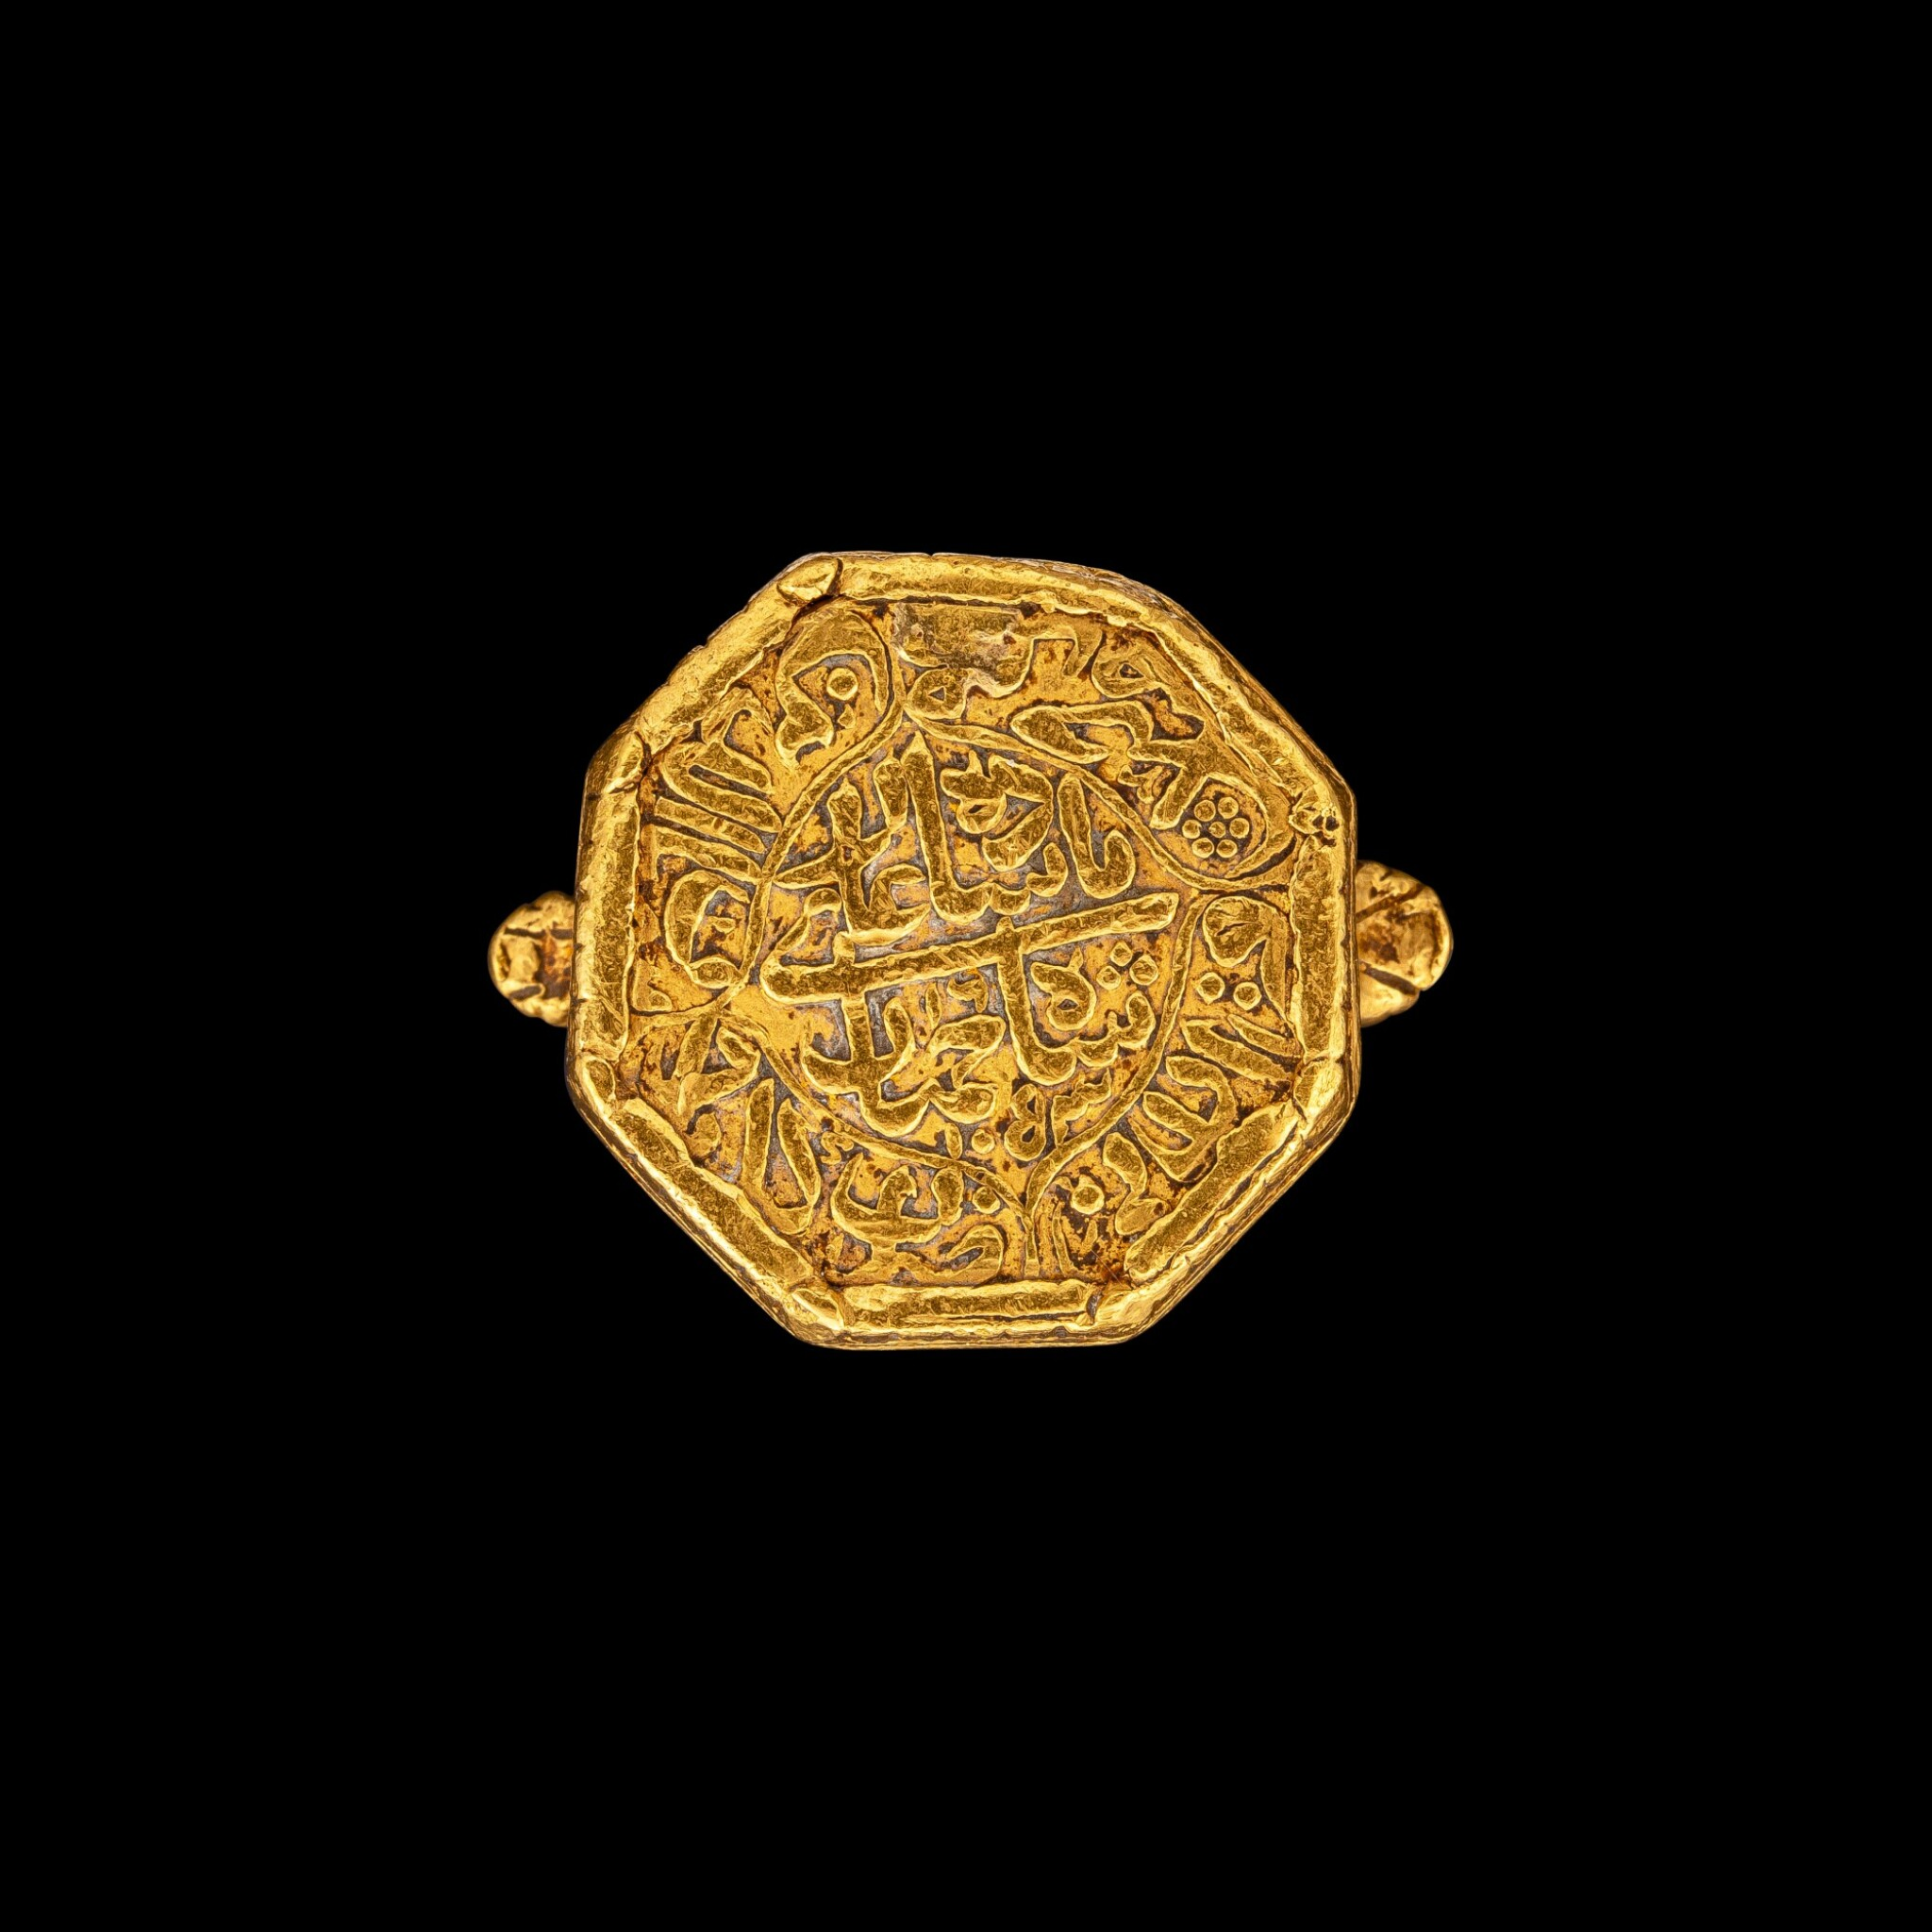 View full screen - View 1 of Lot 1035. A gold hexagonal ring with Islamic script Mughal Shah Jahan I, dated regnal year 16, A.H. 1053, corresponding to 1643-1644 minted at the city of Akbarabad (near Agra), 19th-century setting or earlier   刻伊斯蘭文六角金戒指 莫臥兒沙賈汗一世十六年 回曆1053年(公元1643-1644年)於阿克巴拉巴德市鑄造 配十九世紀或更早鑲座.